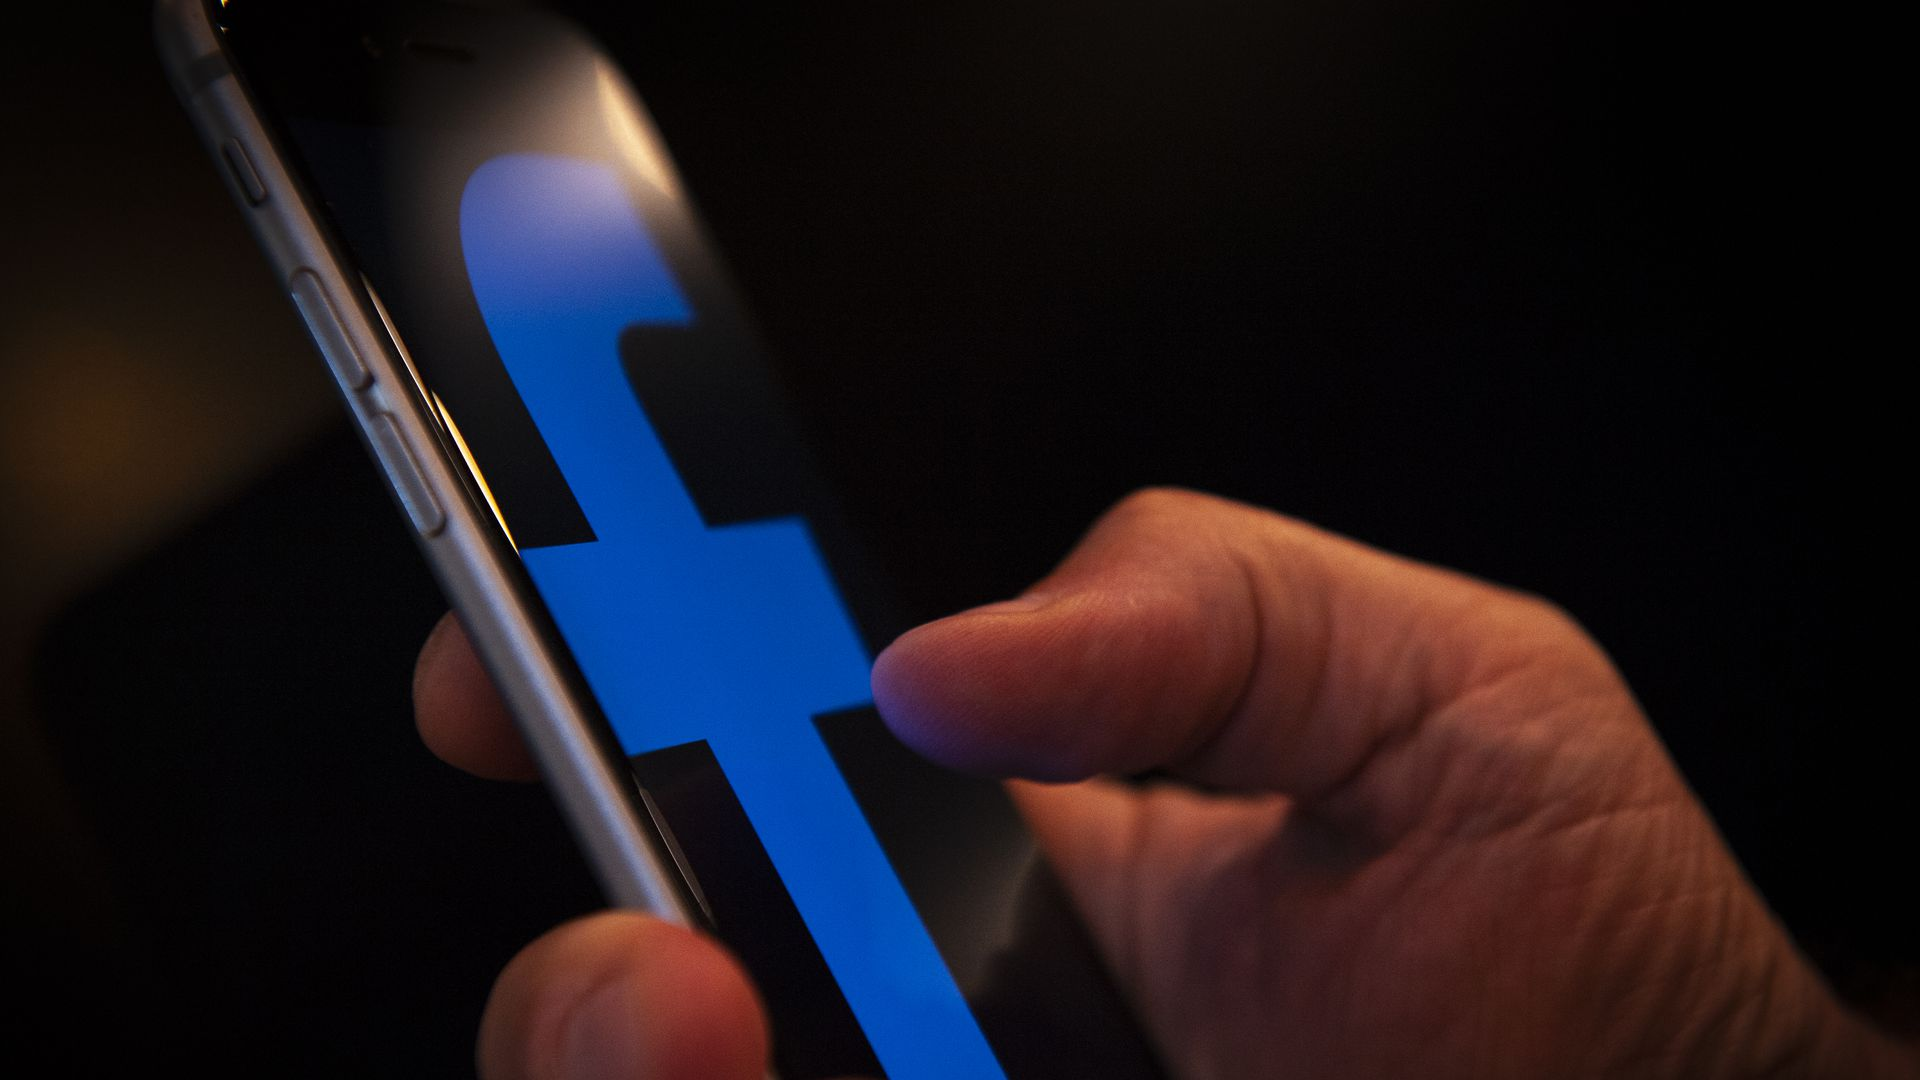 A Facebook logo is seen on an iPhone is seen in this photo illustration on July 9, 2018. (Photo by Jaap Arriens/NurPhoto via Getty Images)